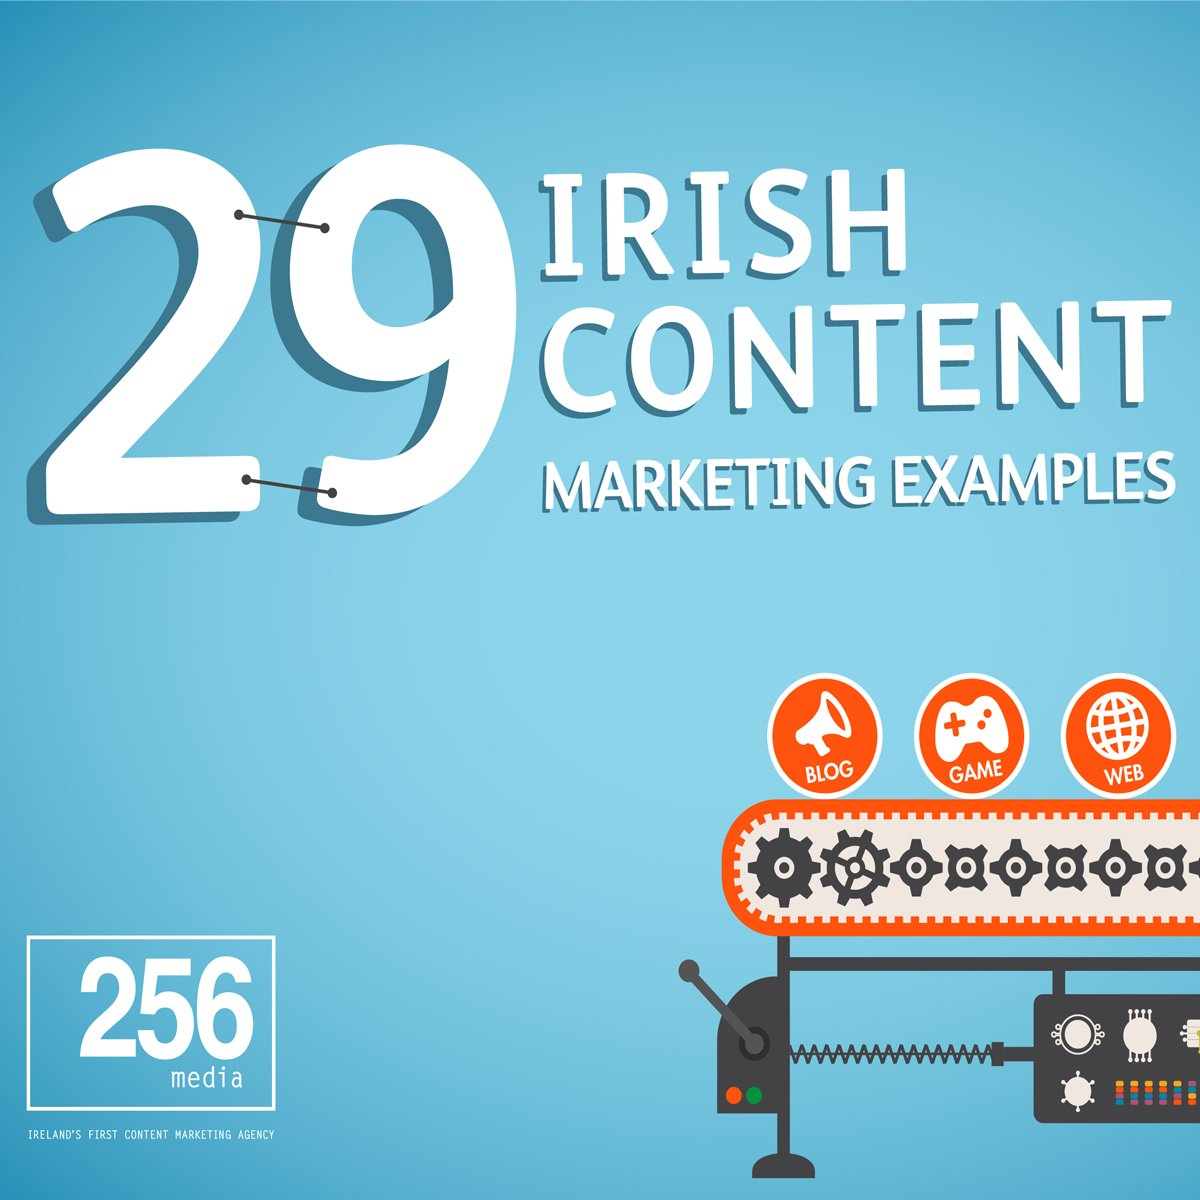 29 Irish Content Marketing Examples